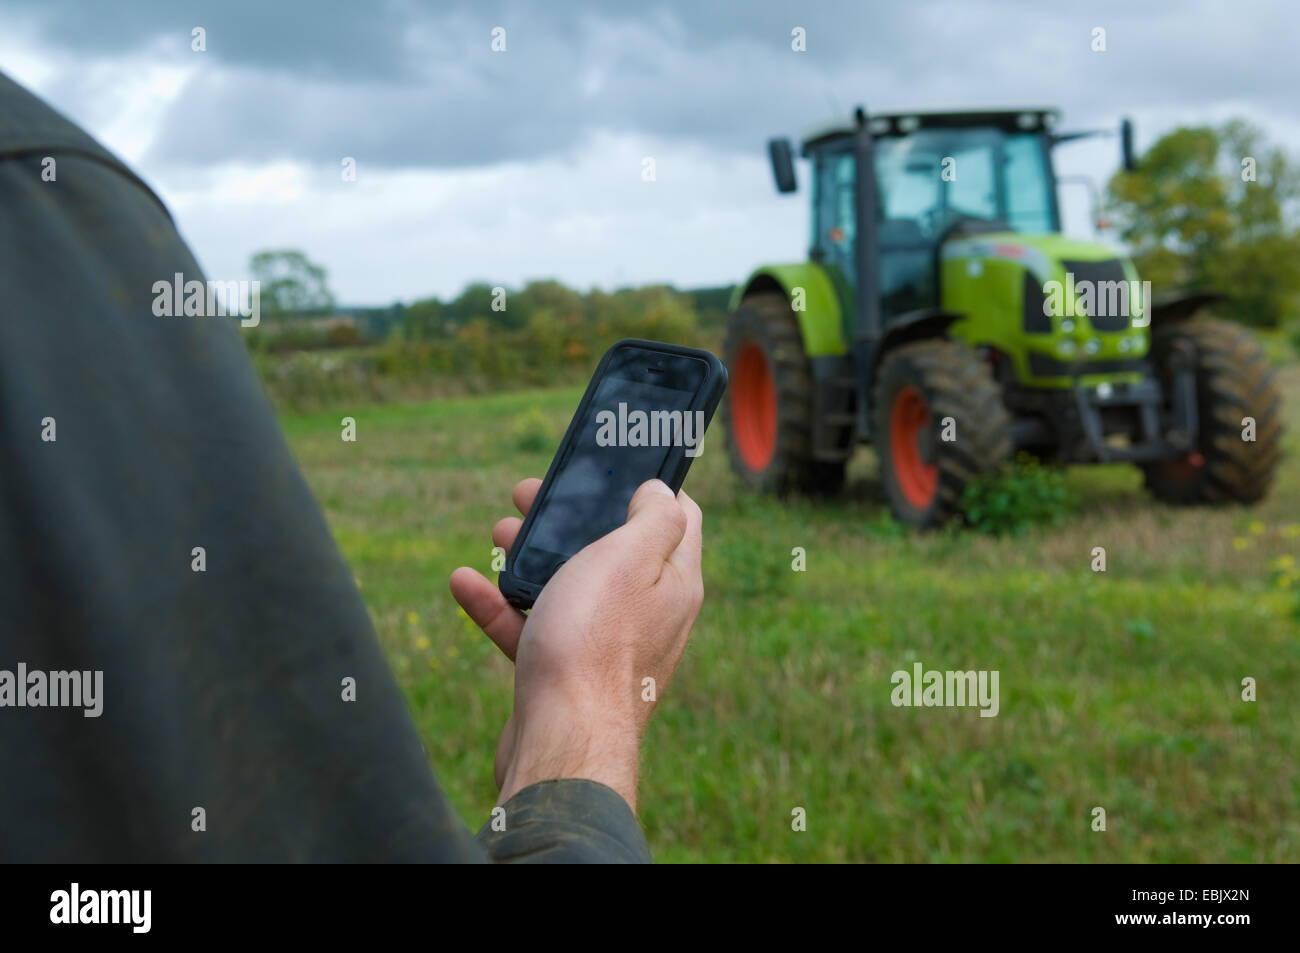 Male farmers hand holding up smartphone in field - Stock Image